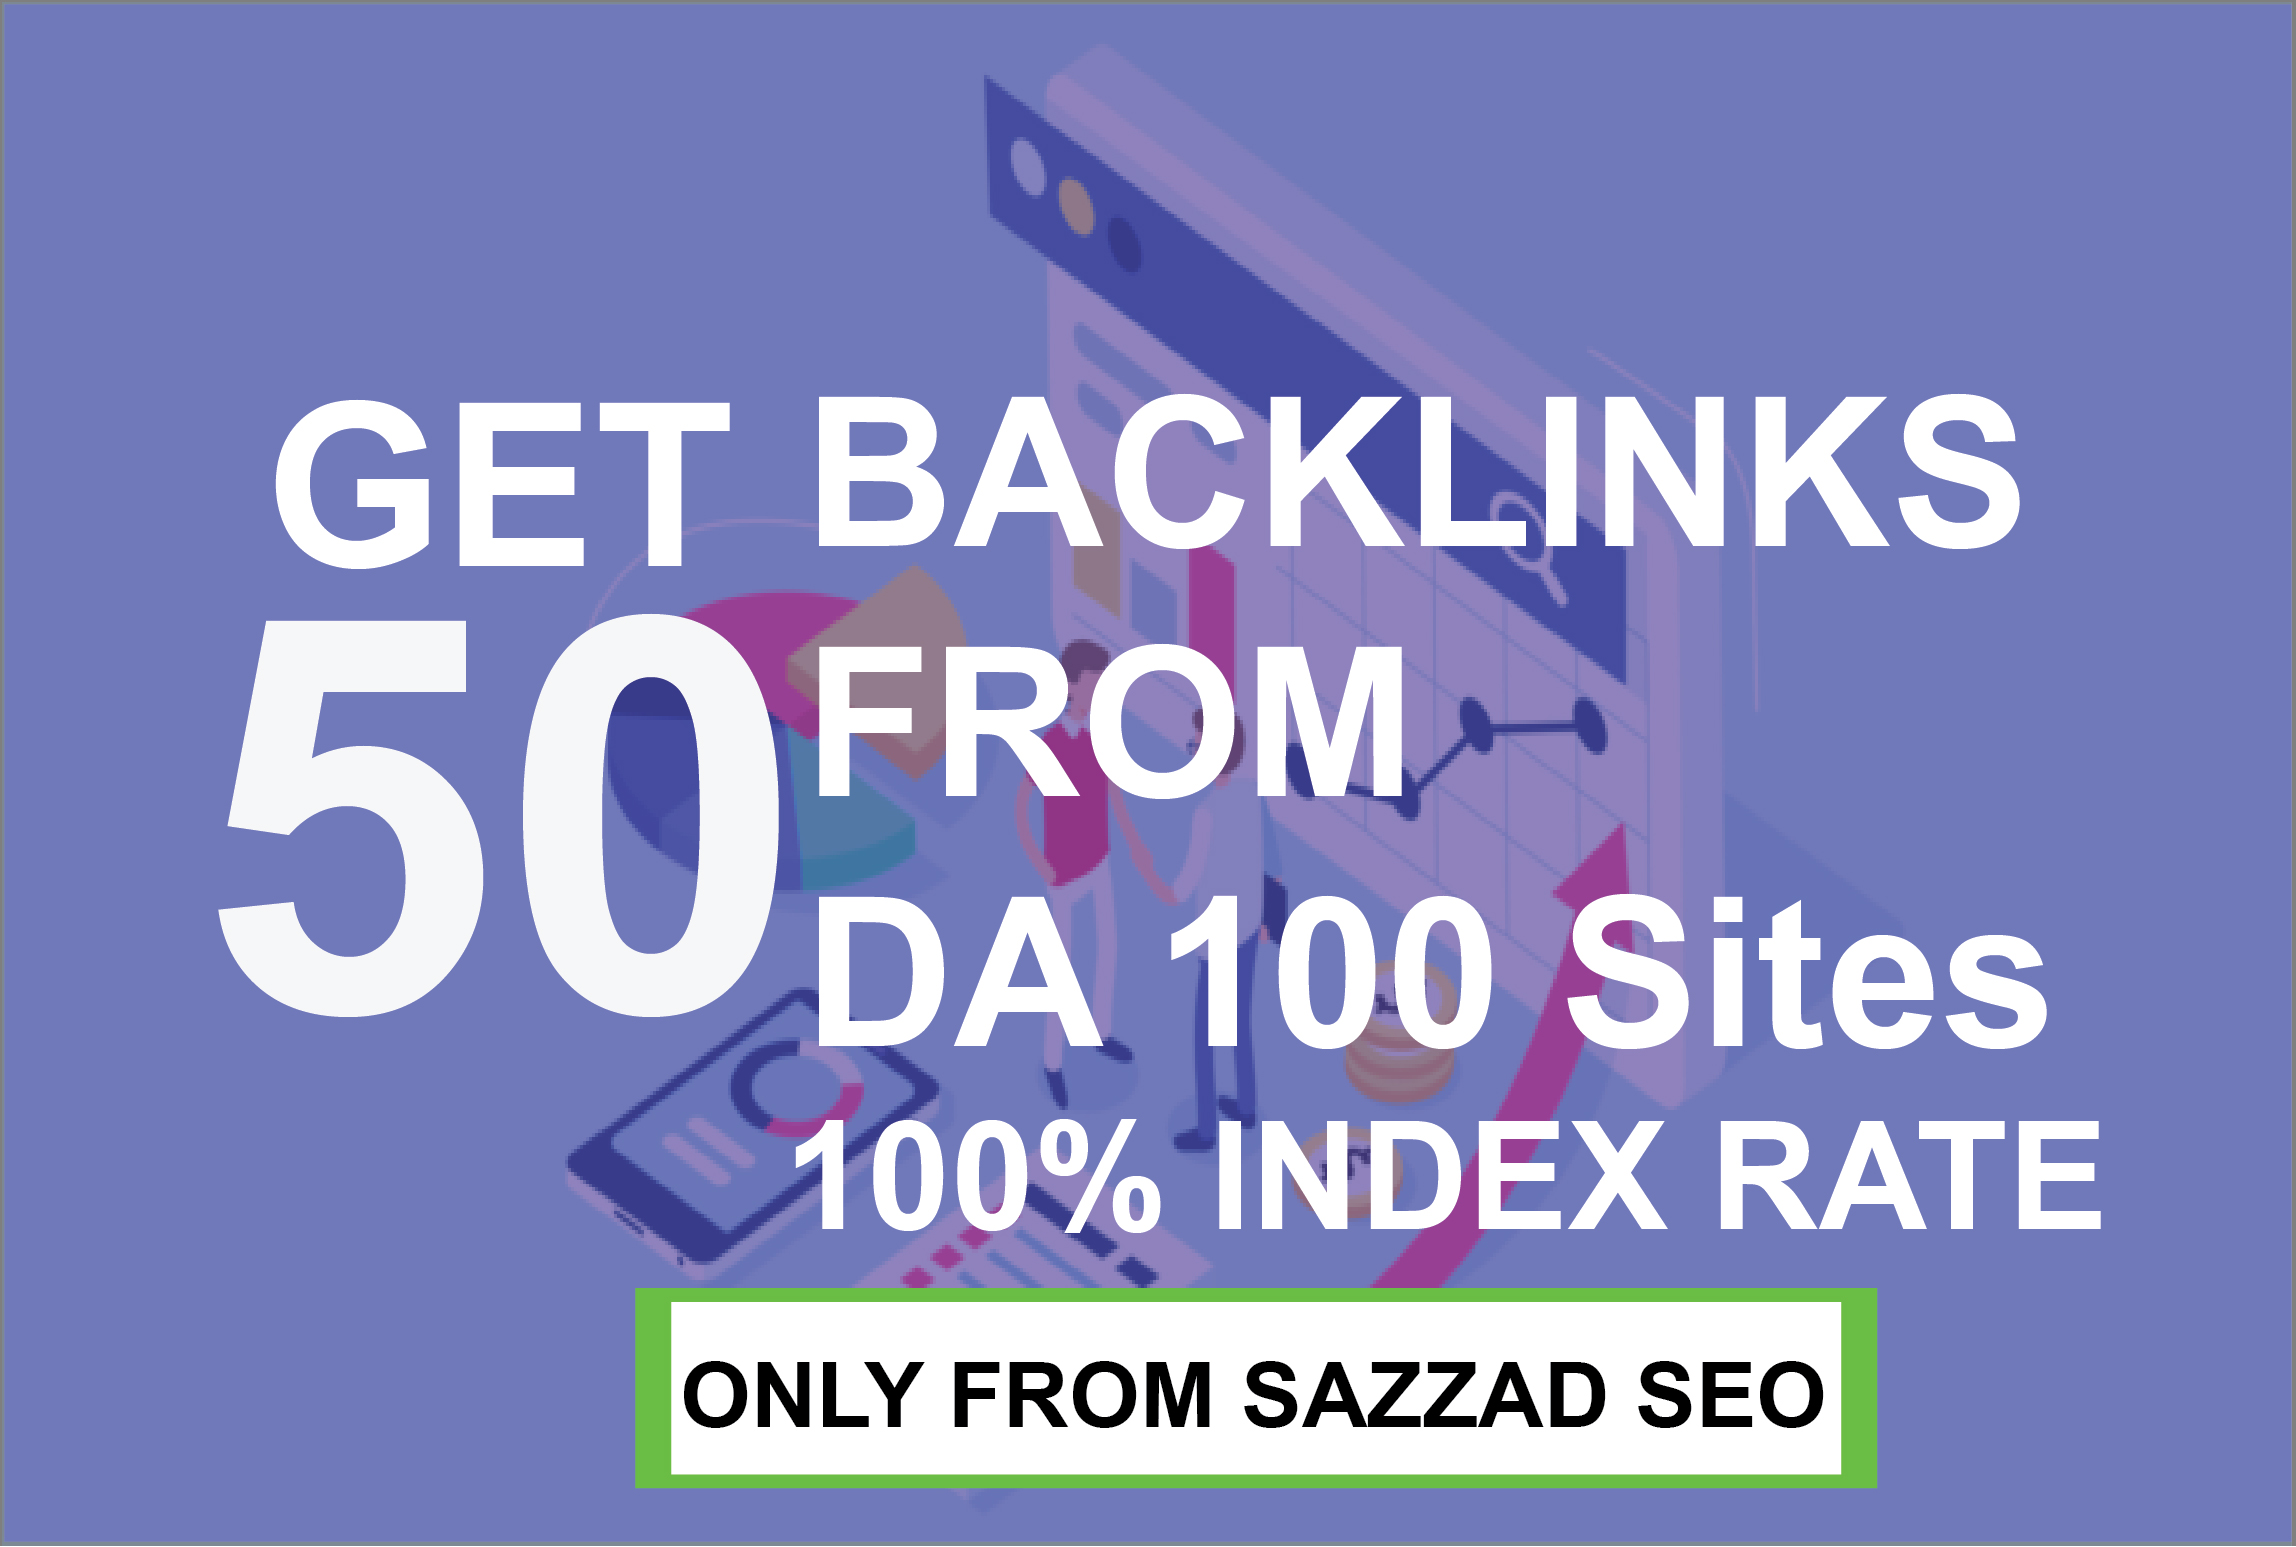 Get 50 Backlinks From DA 100 Sites Increase Domain Authority